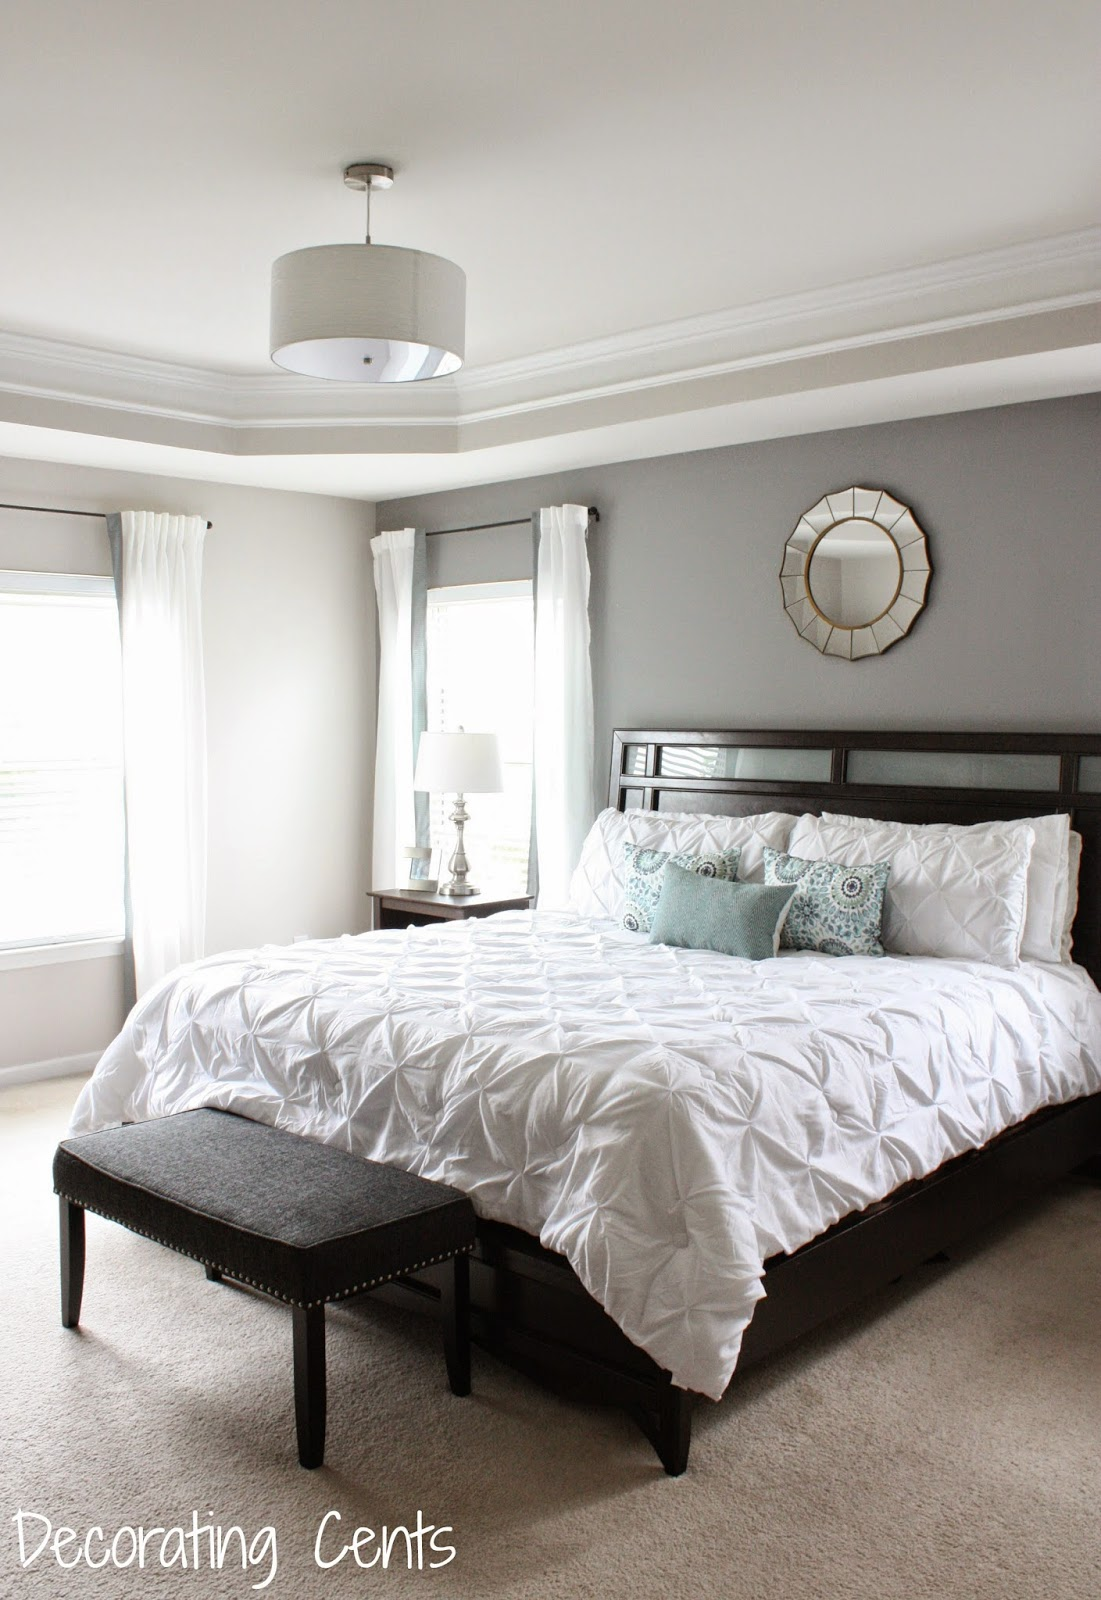 Decorating Cents: Gray Accent Wall